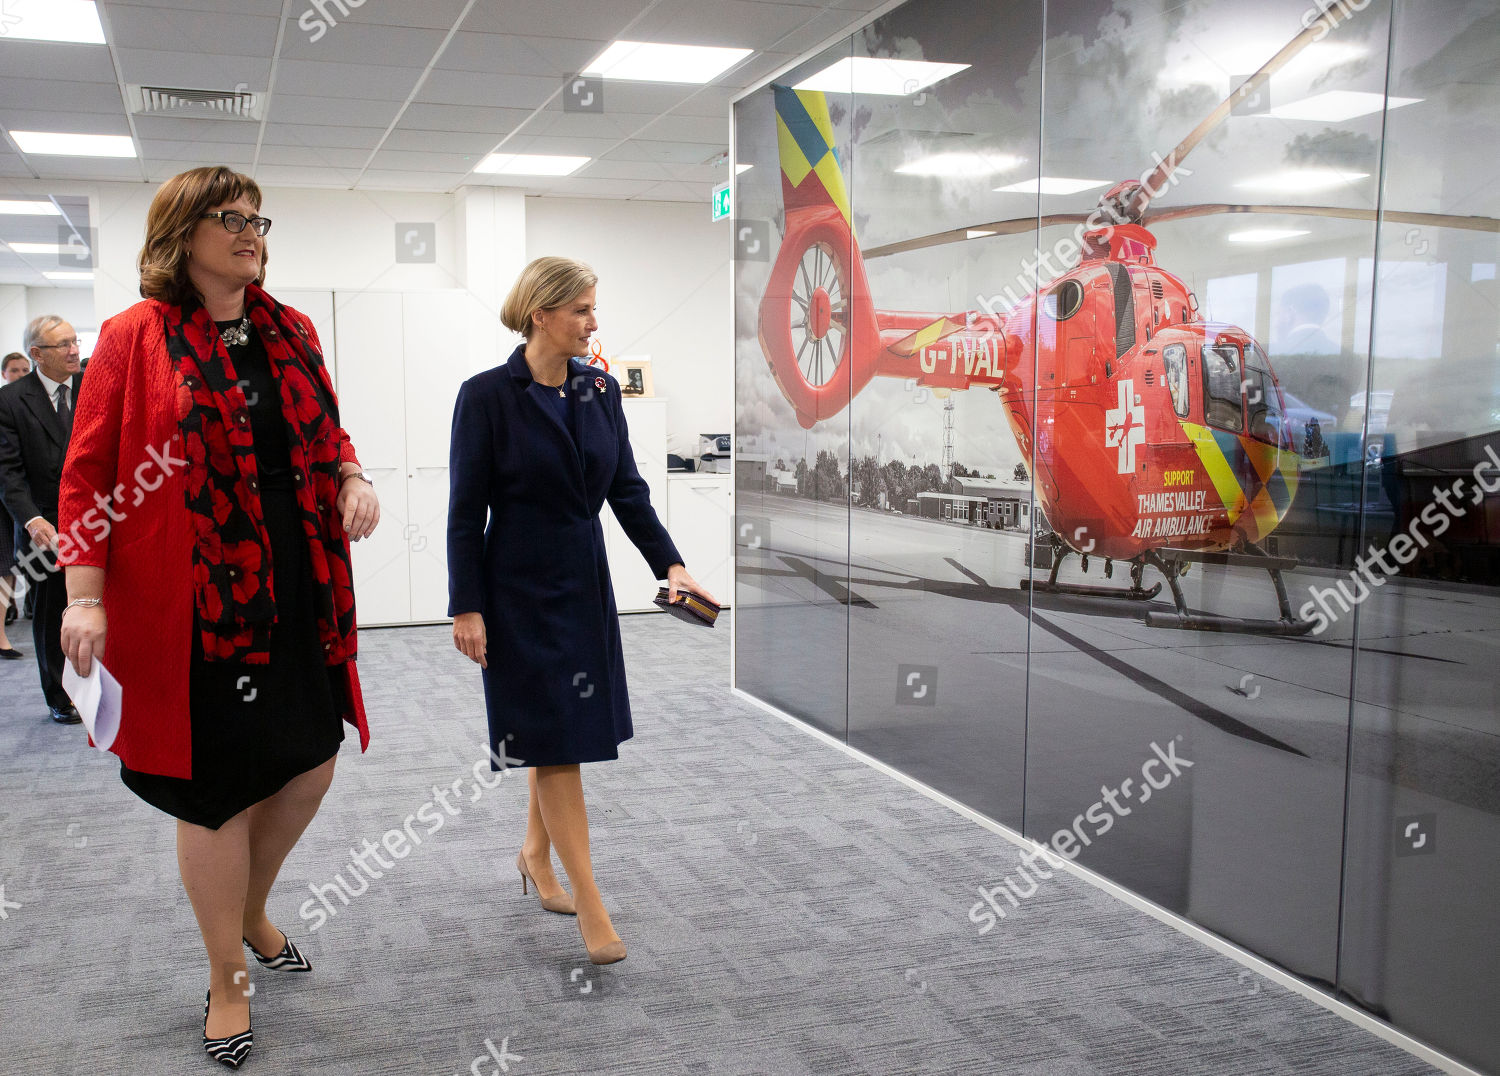 sophie-countess-of-wessex-opens-the-thames-valley-air-ambulance-headquarters-stokenchurch-buckinghamshire-uk-shutterstock-editorial-9968468r.jpg